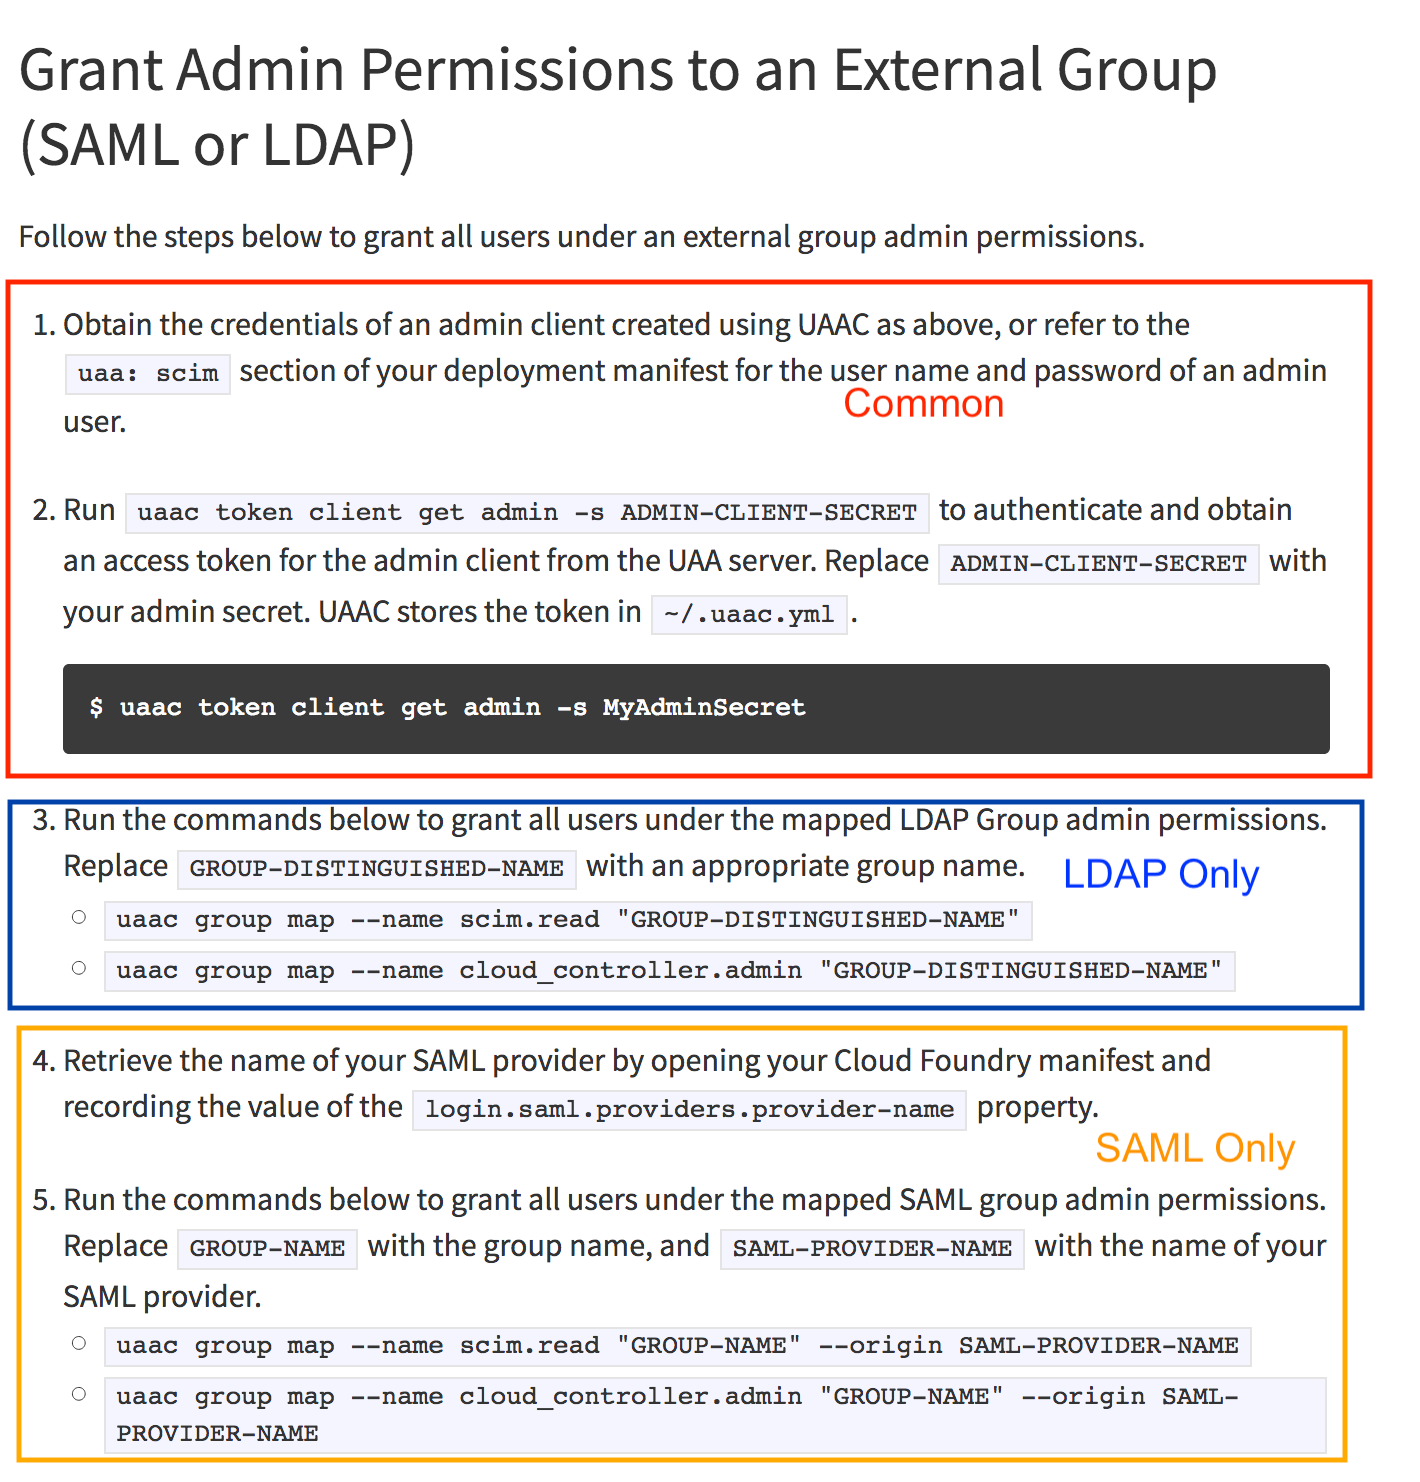 Grant Admin Permissions to an External Group needs to clarify which